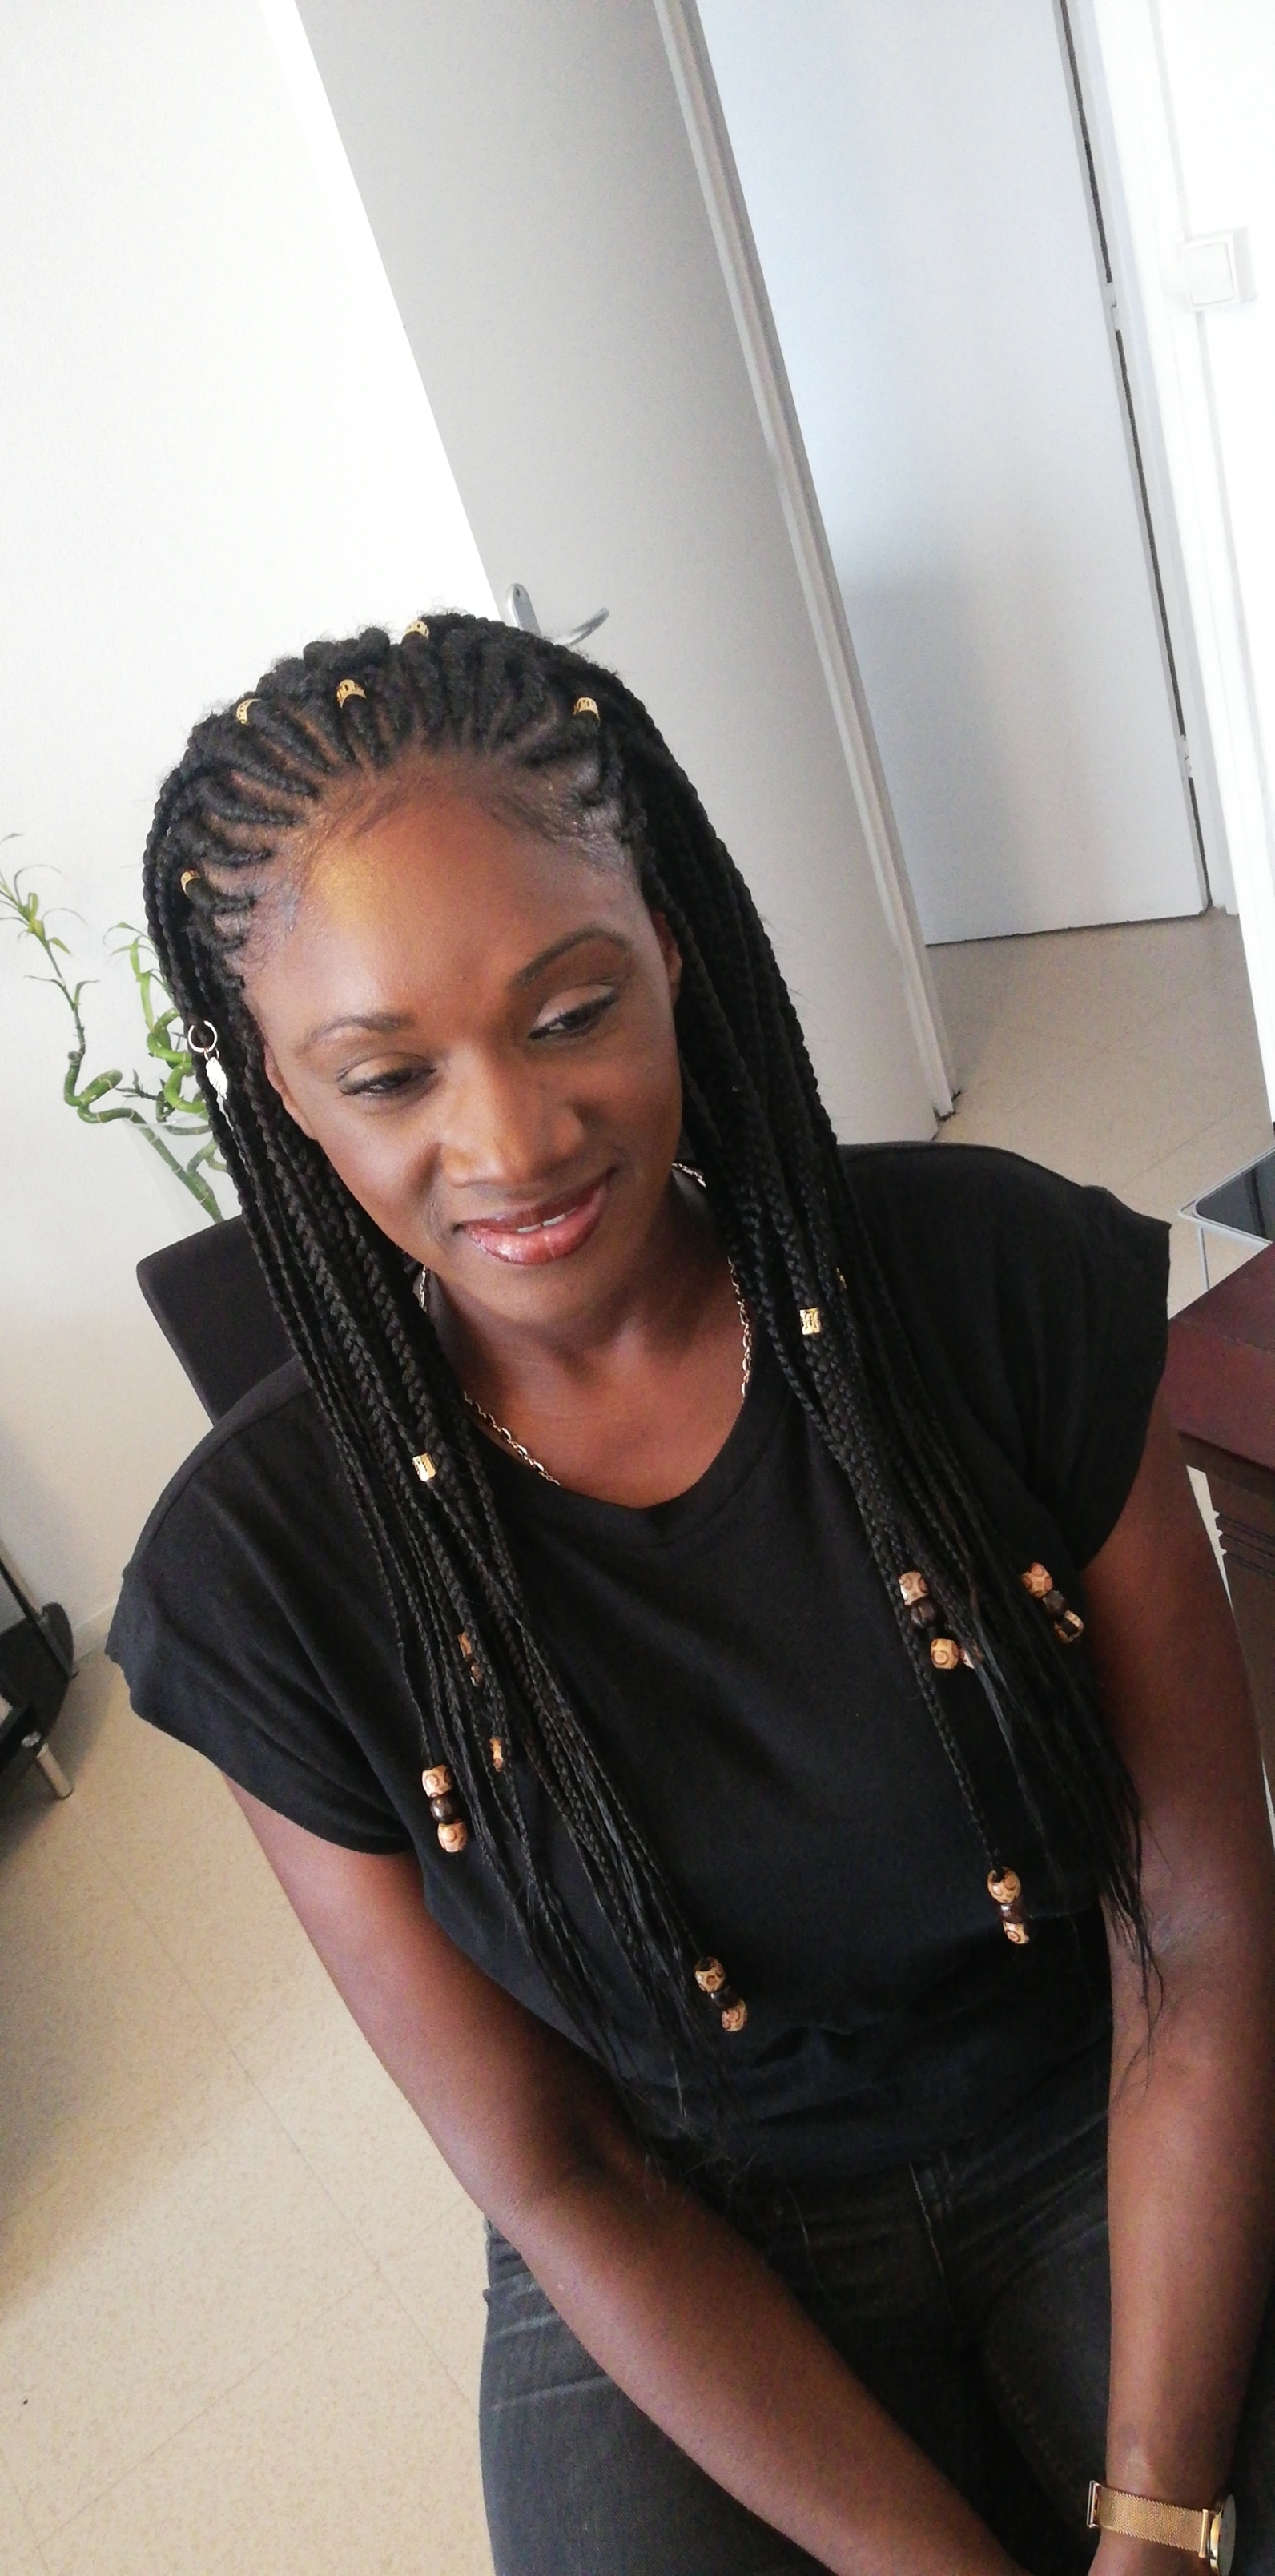 salon de coiffure afro tresse tresses box braids crochet braids vanilles tissages paris 75 77 78 91 92 93 94 95 TNXHURBO